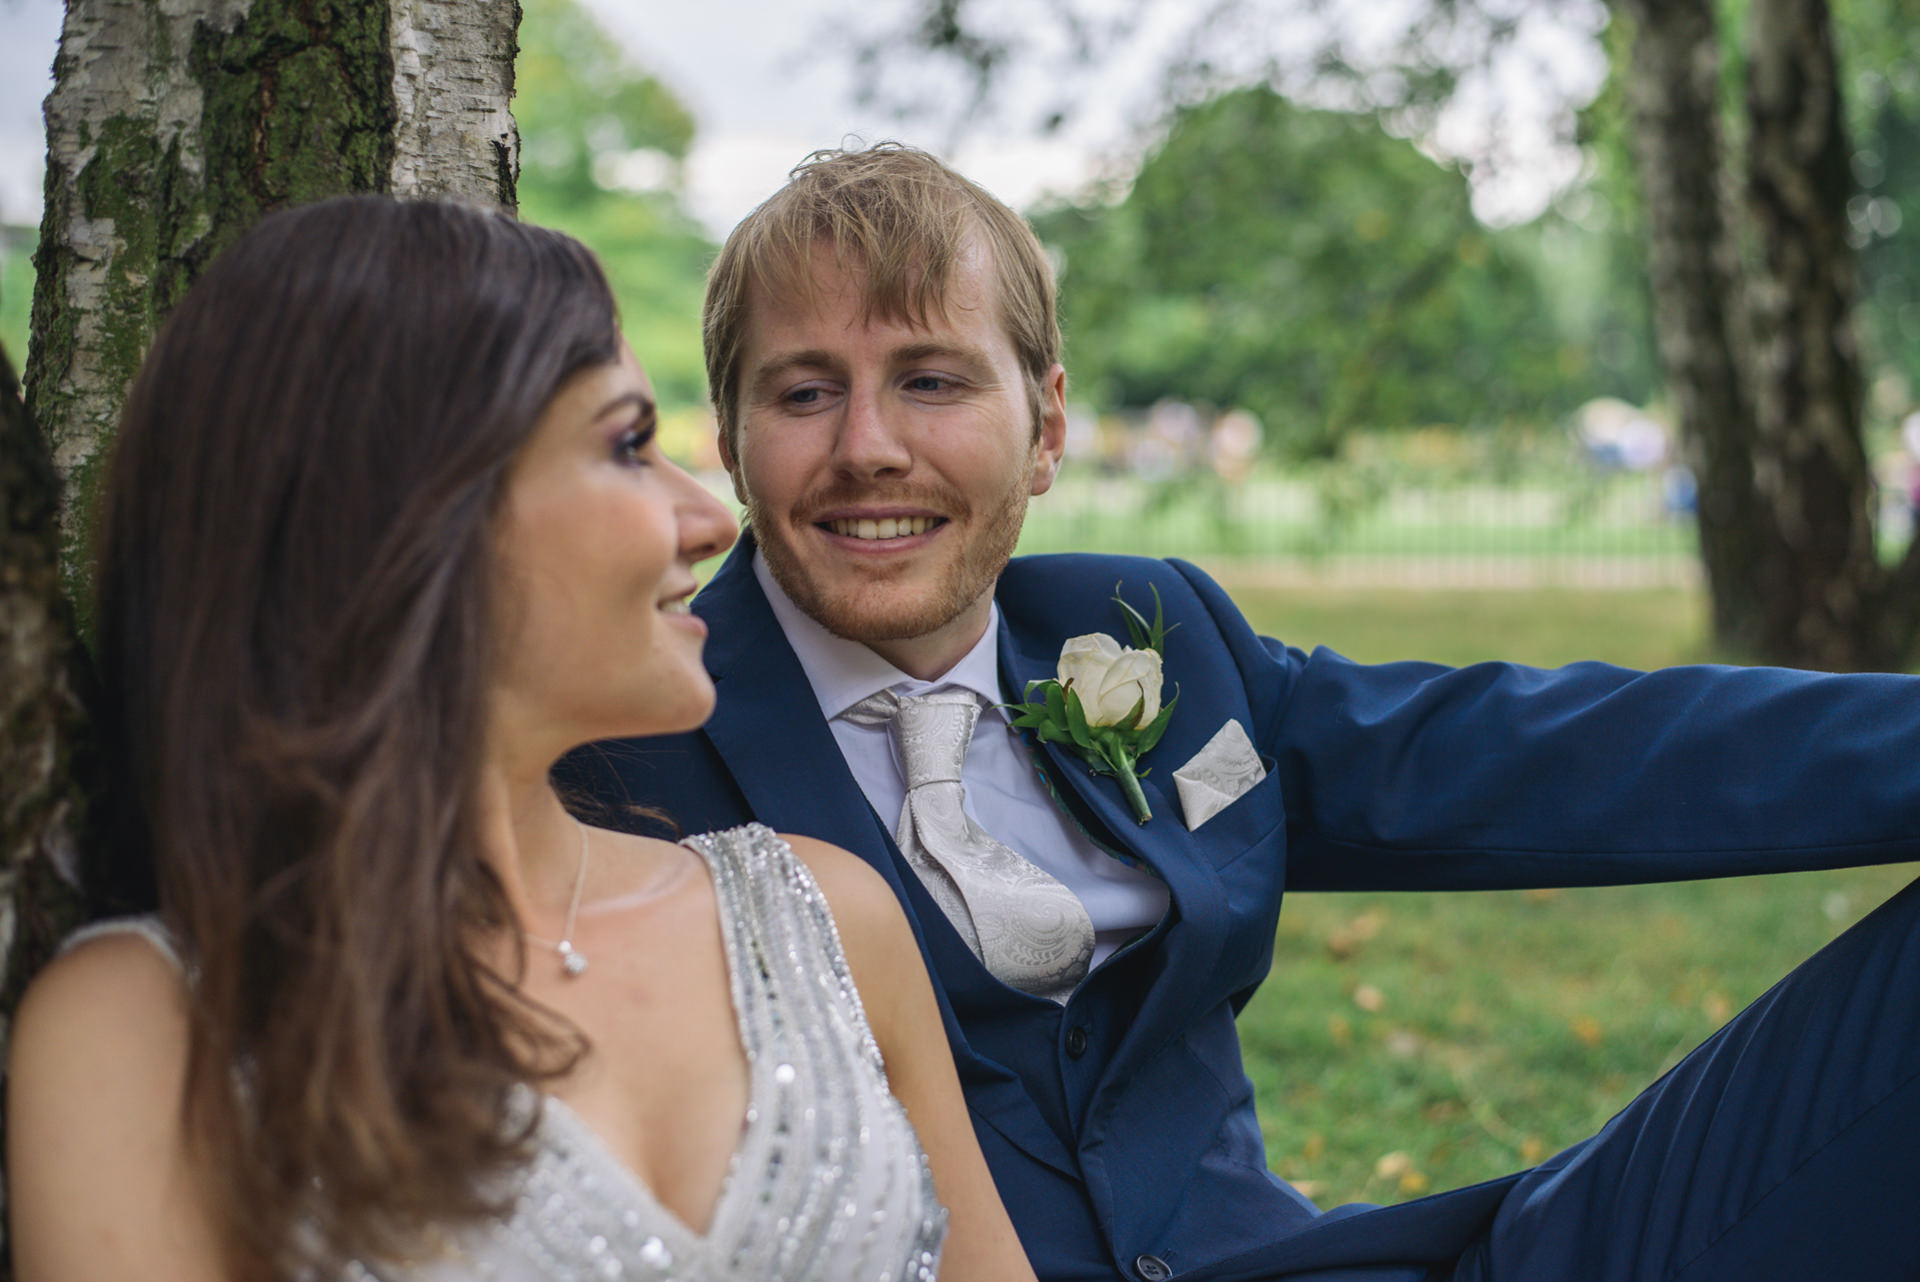 Regents park London wedding photoshoot